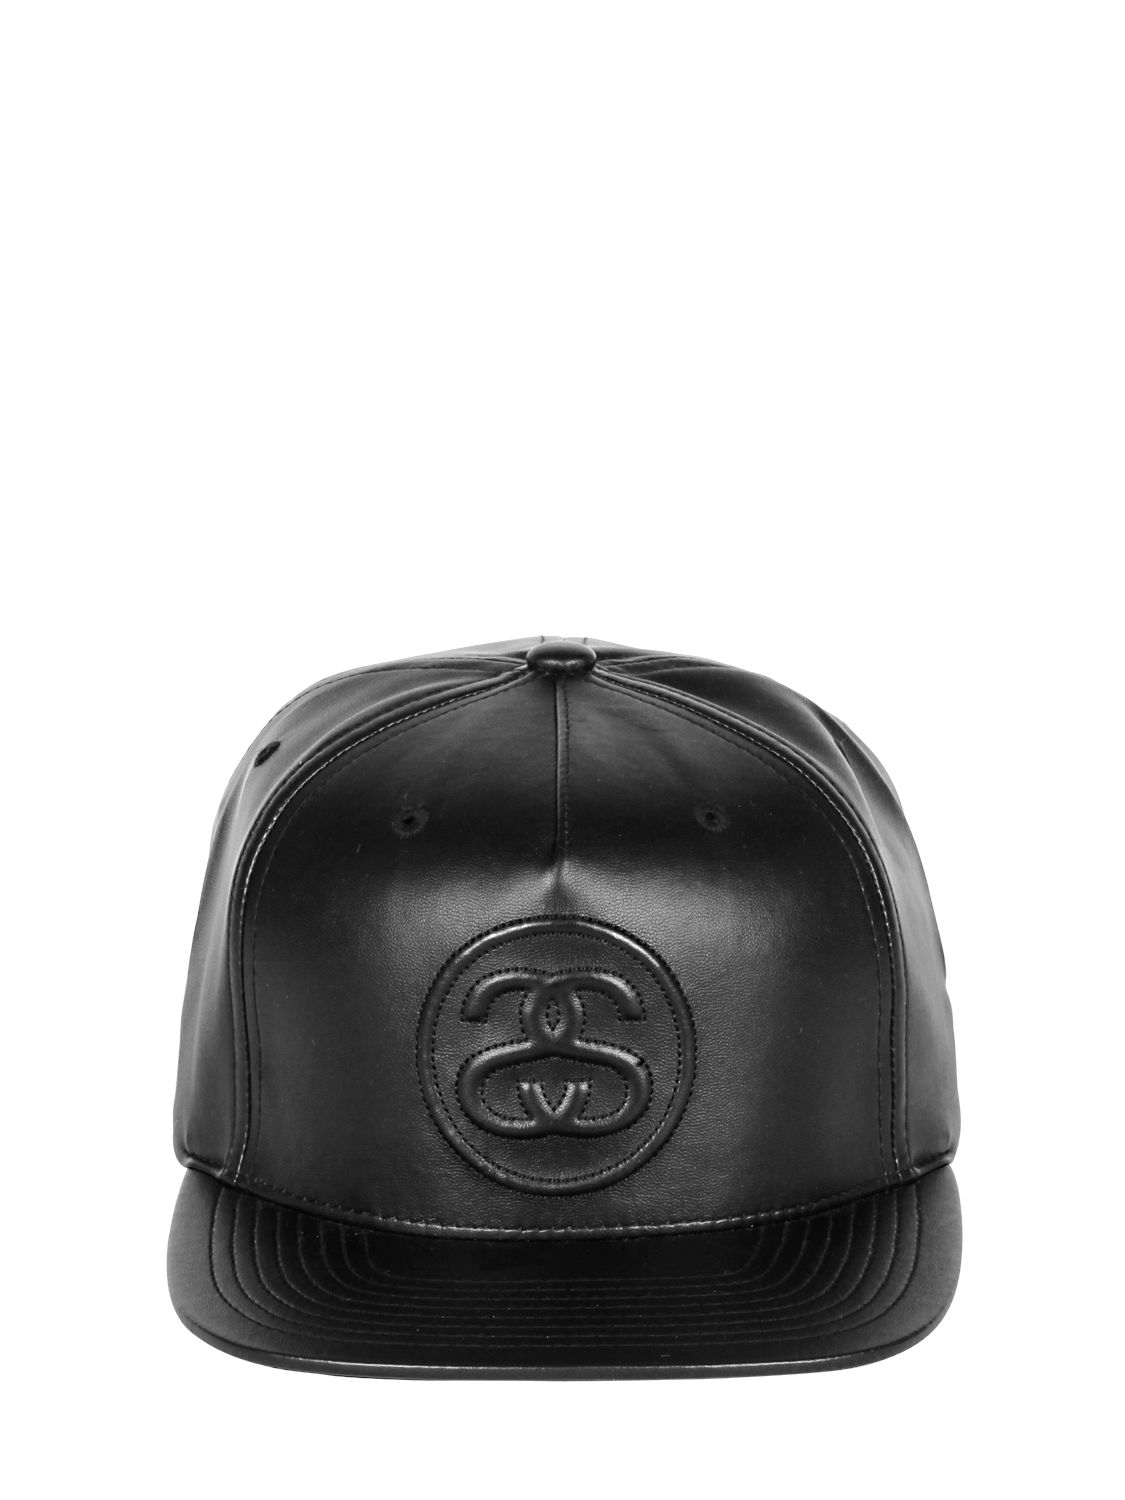 Stussy Faux Leather Baseball Hat in Black for Men - Lyst 98710c942ed